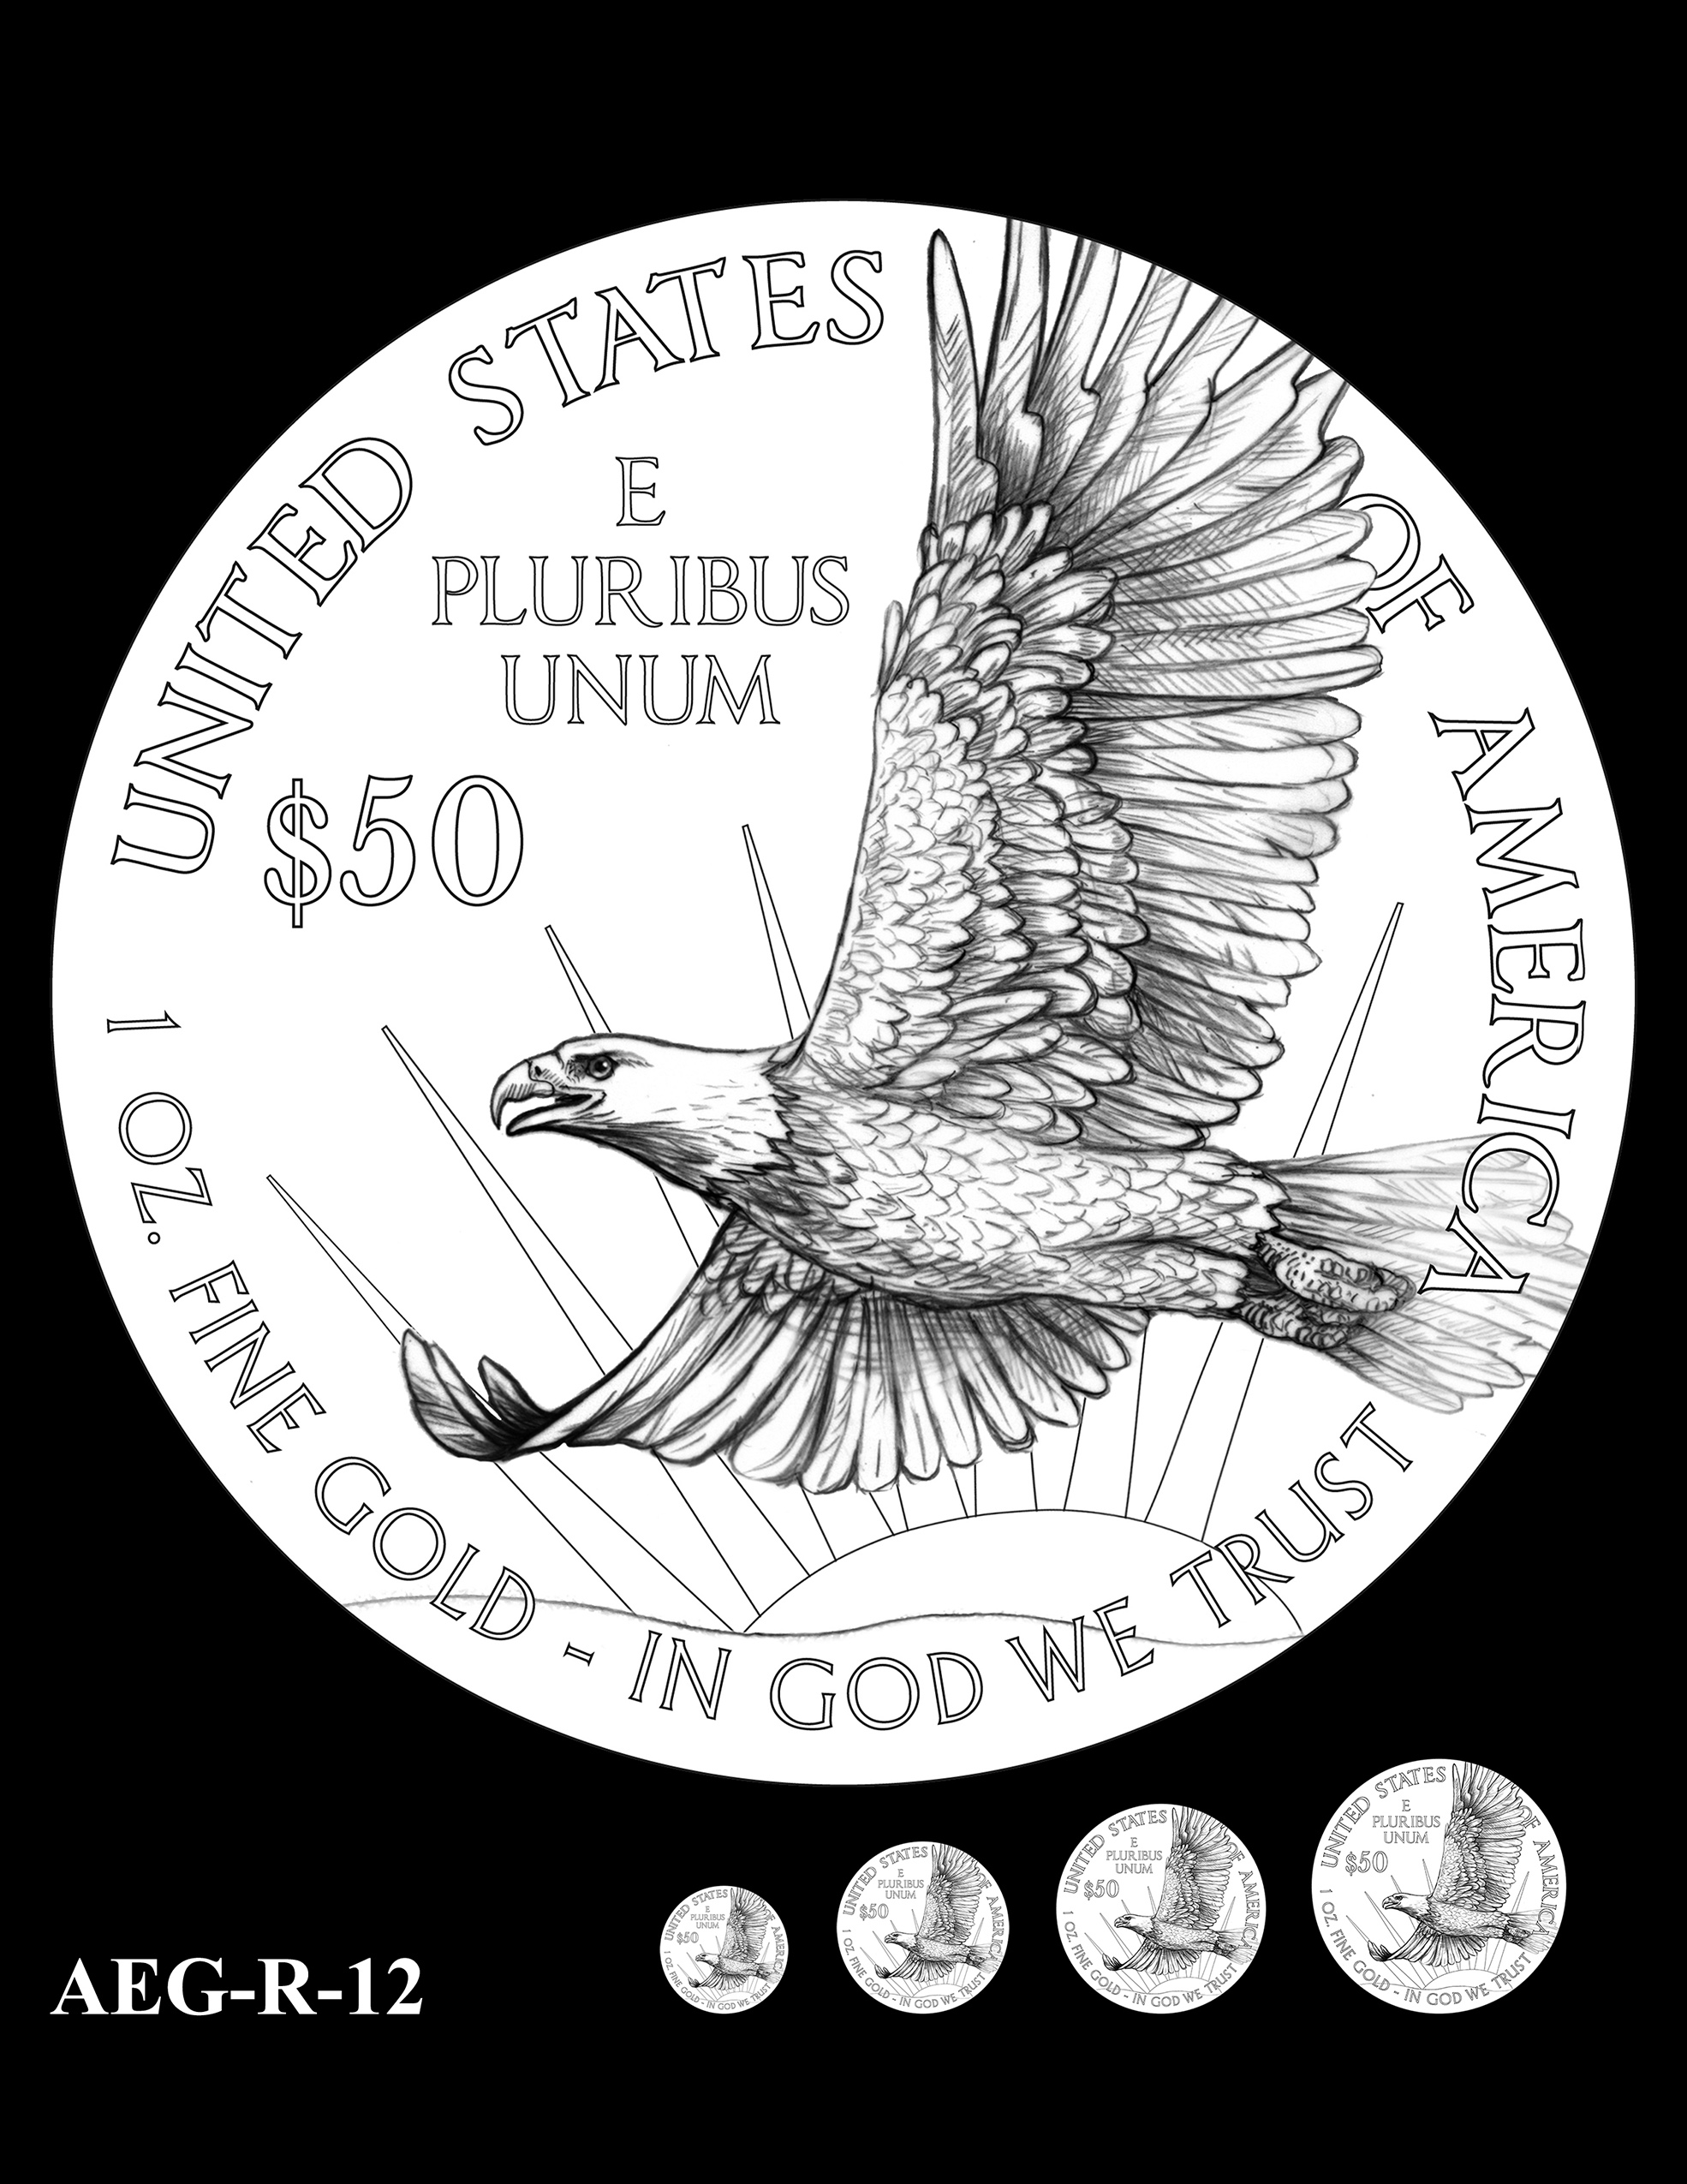 AEG-R-12 -- American Eagle Proof and Bullion Gold Coin - Reverse